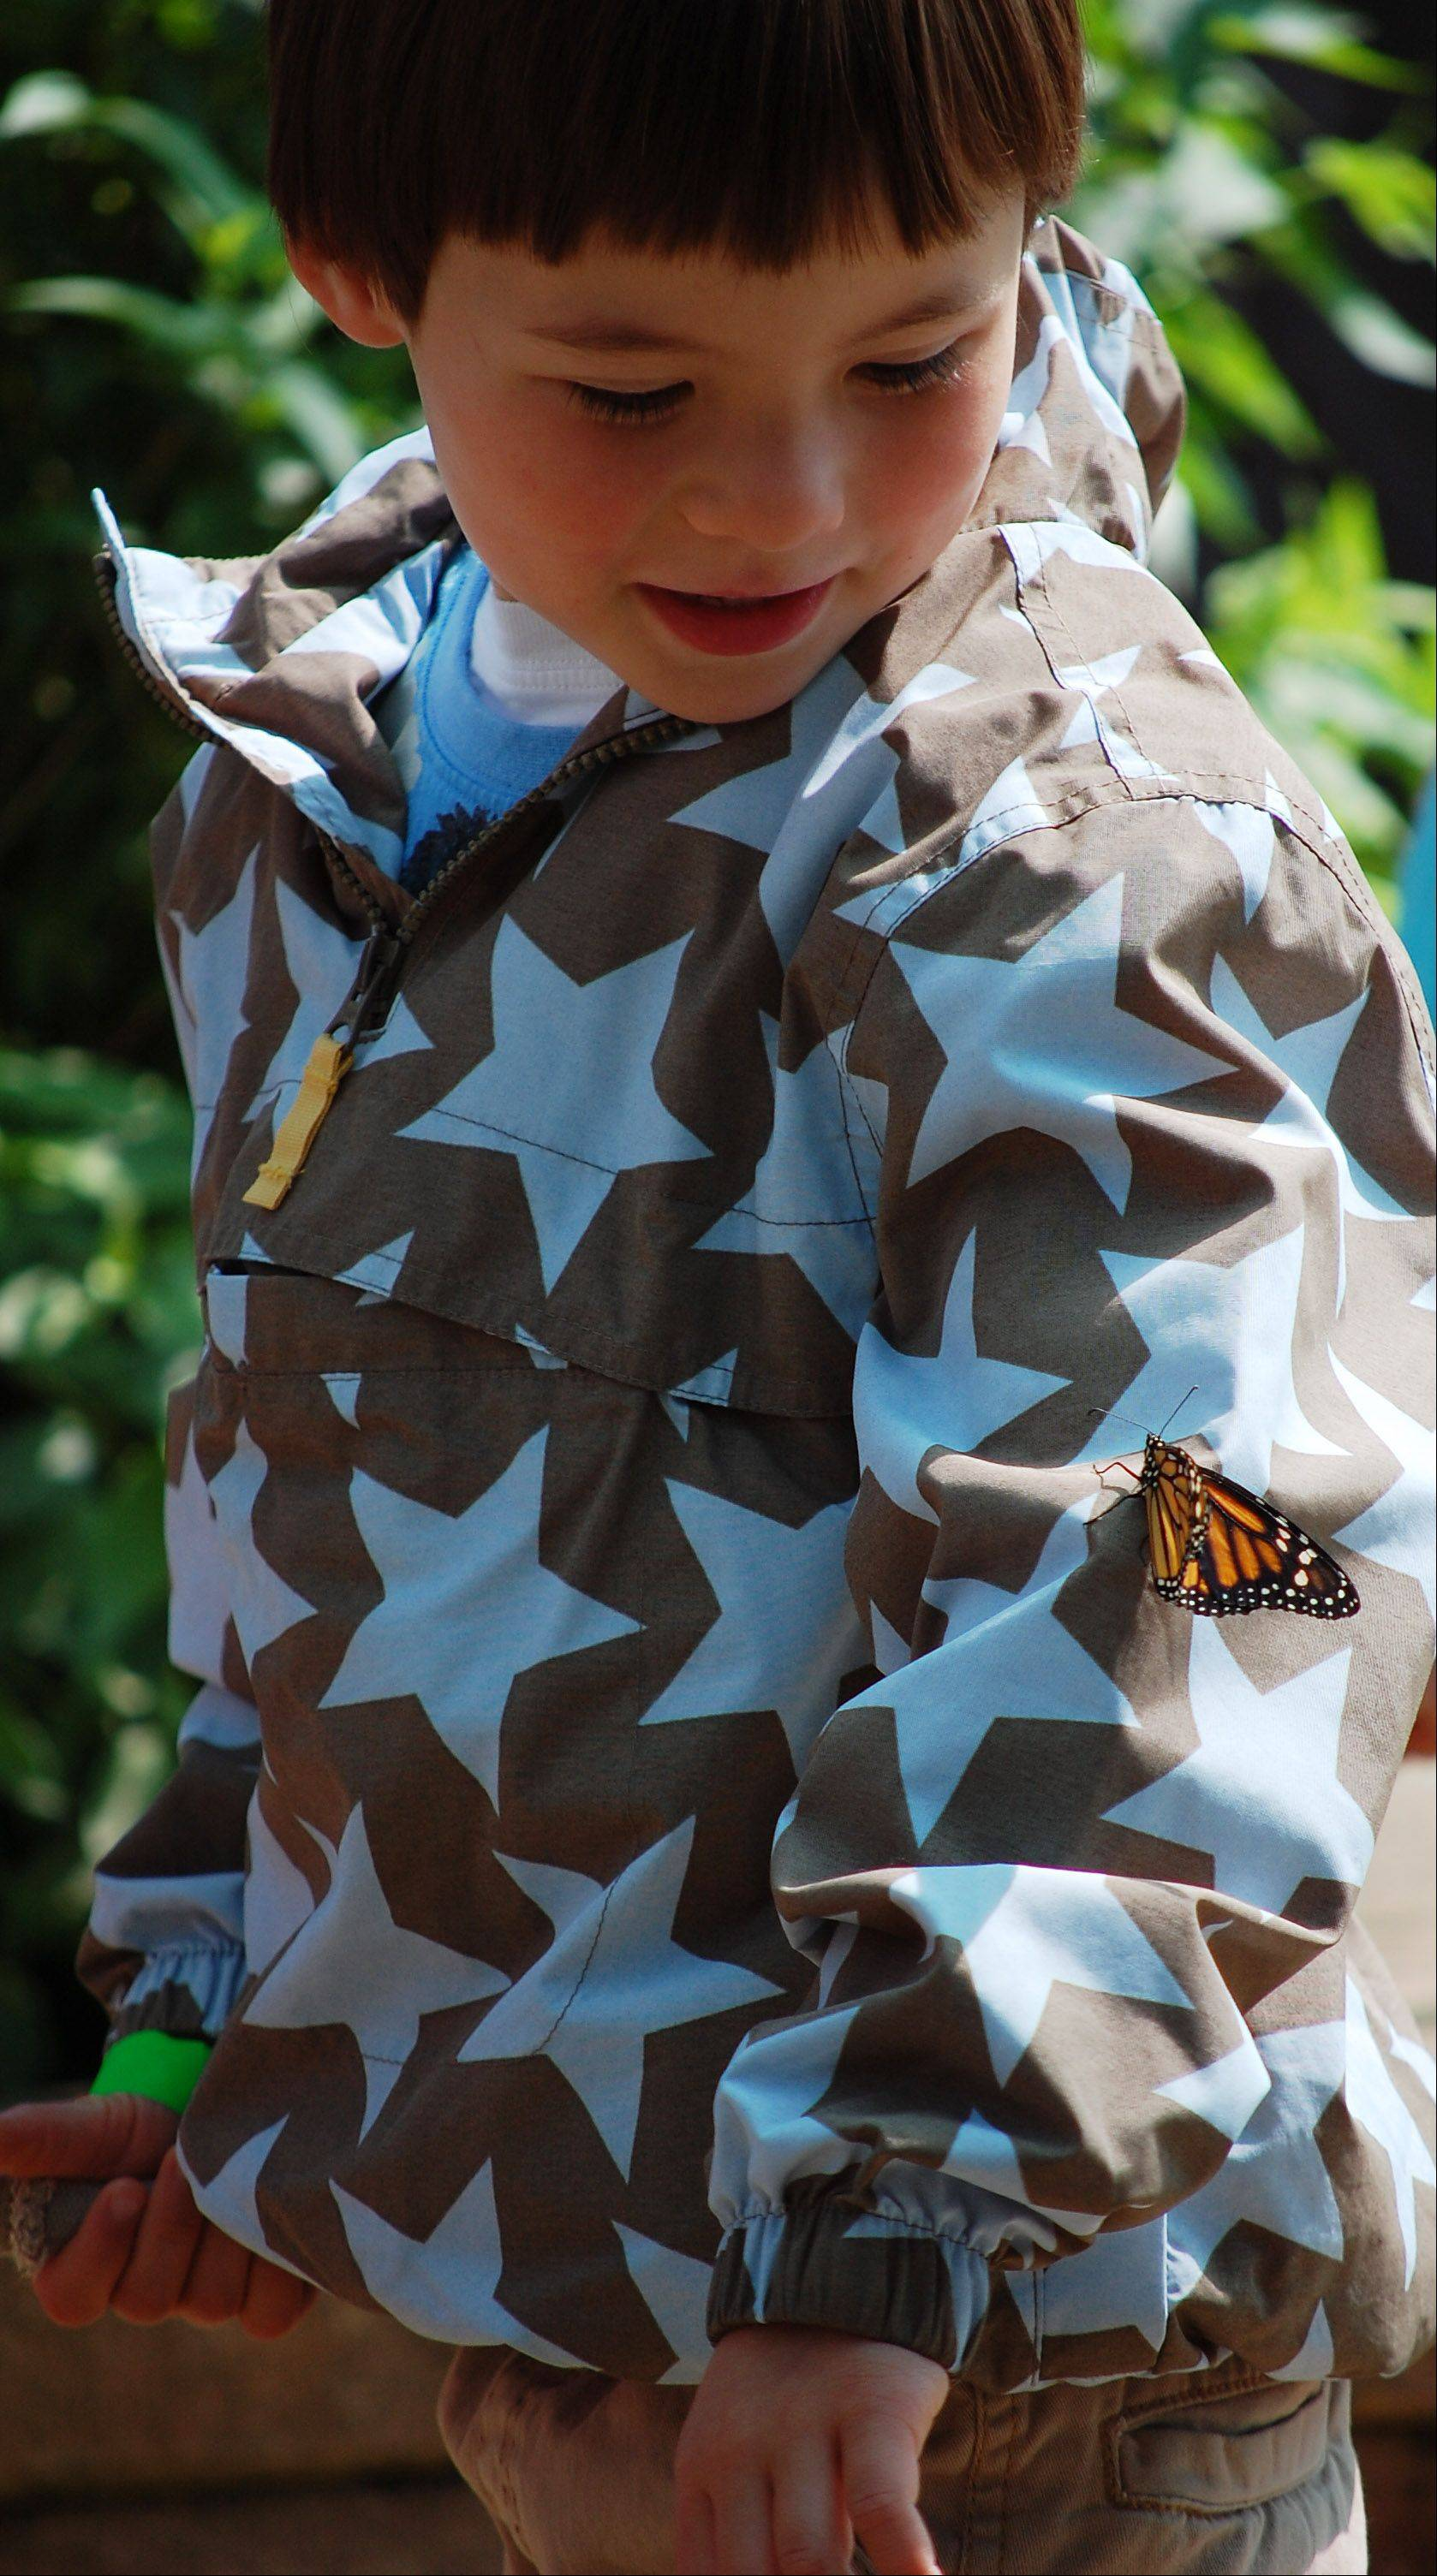 Jake Turoff, 3, of Geneva, enjoys the 10th anniversary of the Butterfly House at Peck Farm Park. It opened Friday with the release of 400 butterflies.